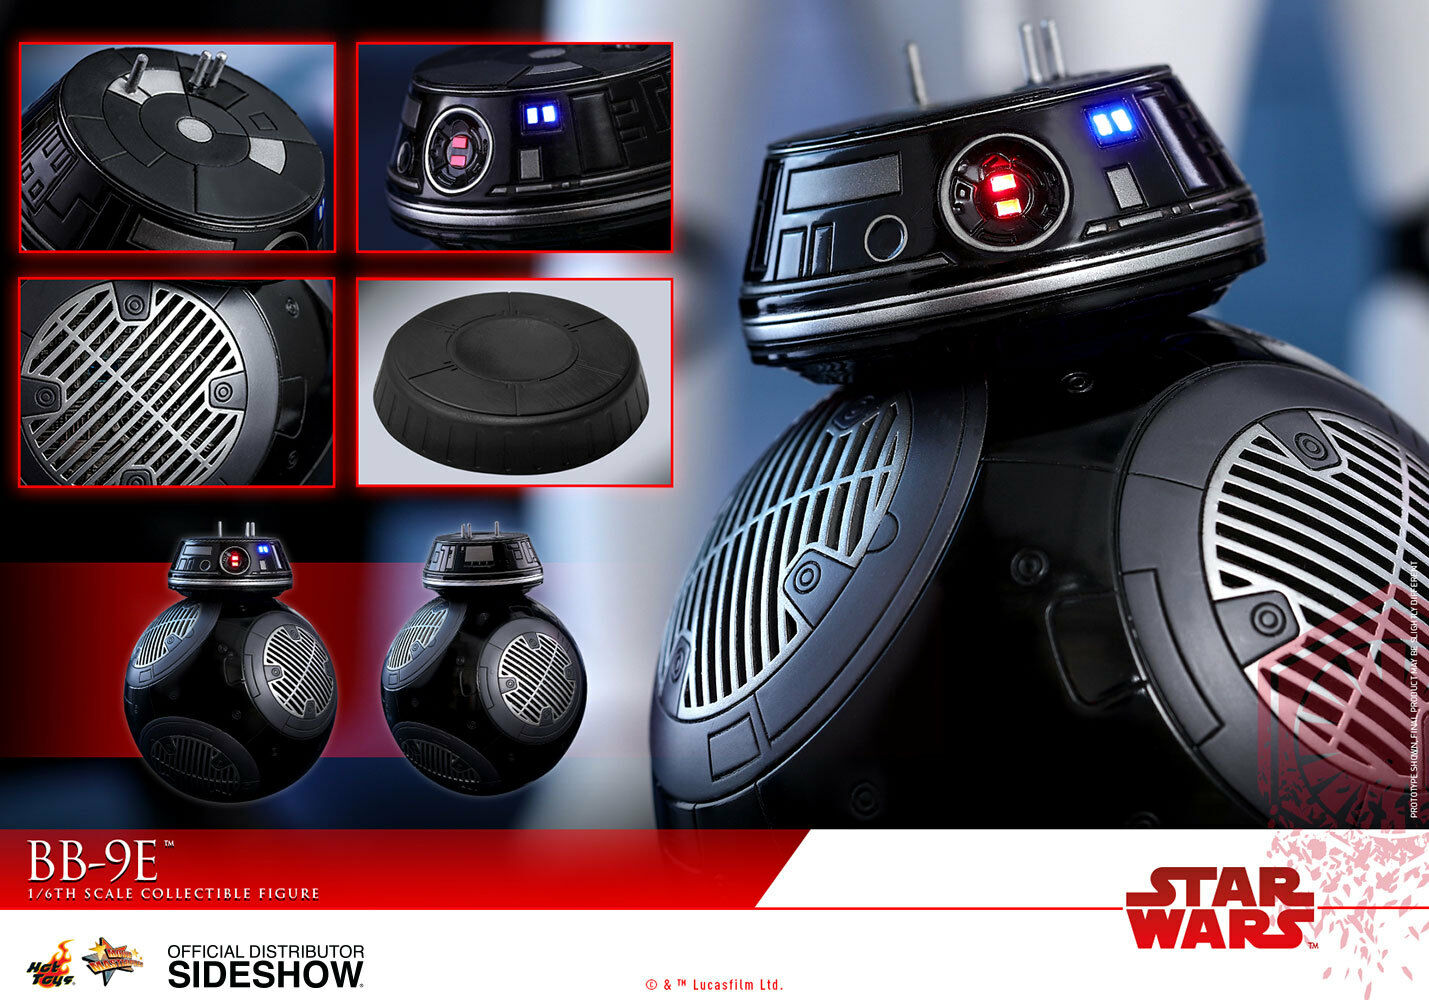 Hot Toys Star Wars: The Last Jedi BB-9E Action Figure 1/6 Scale MMS441